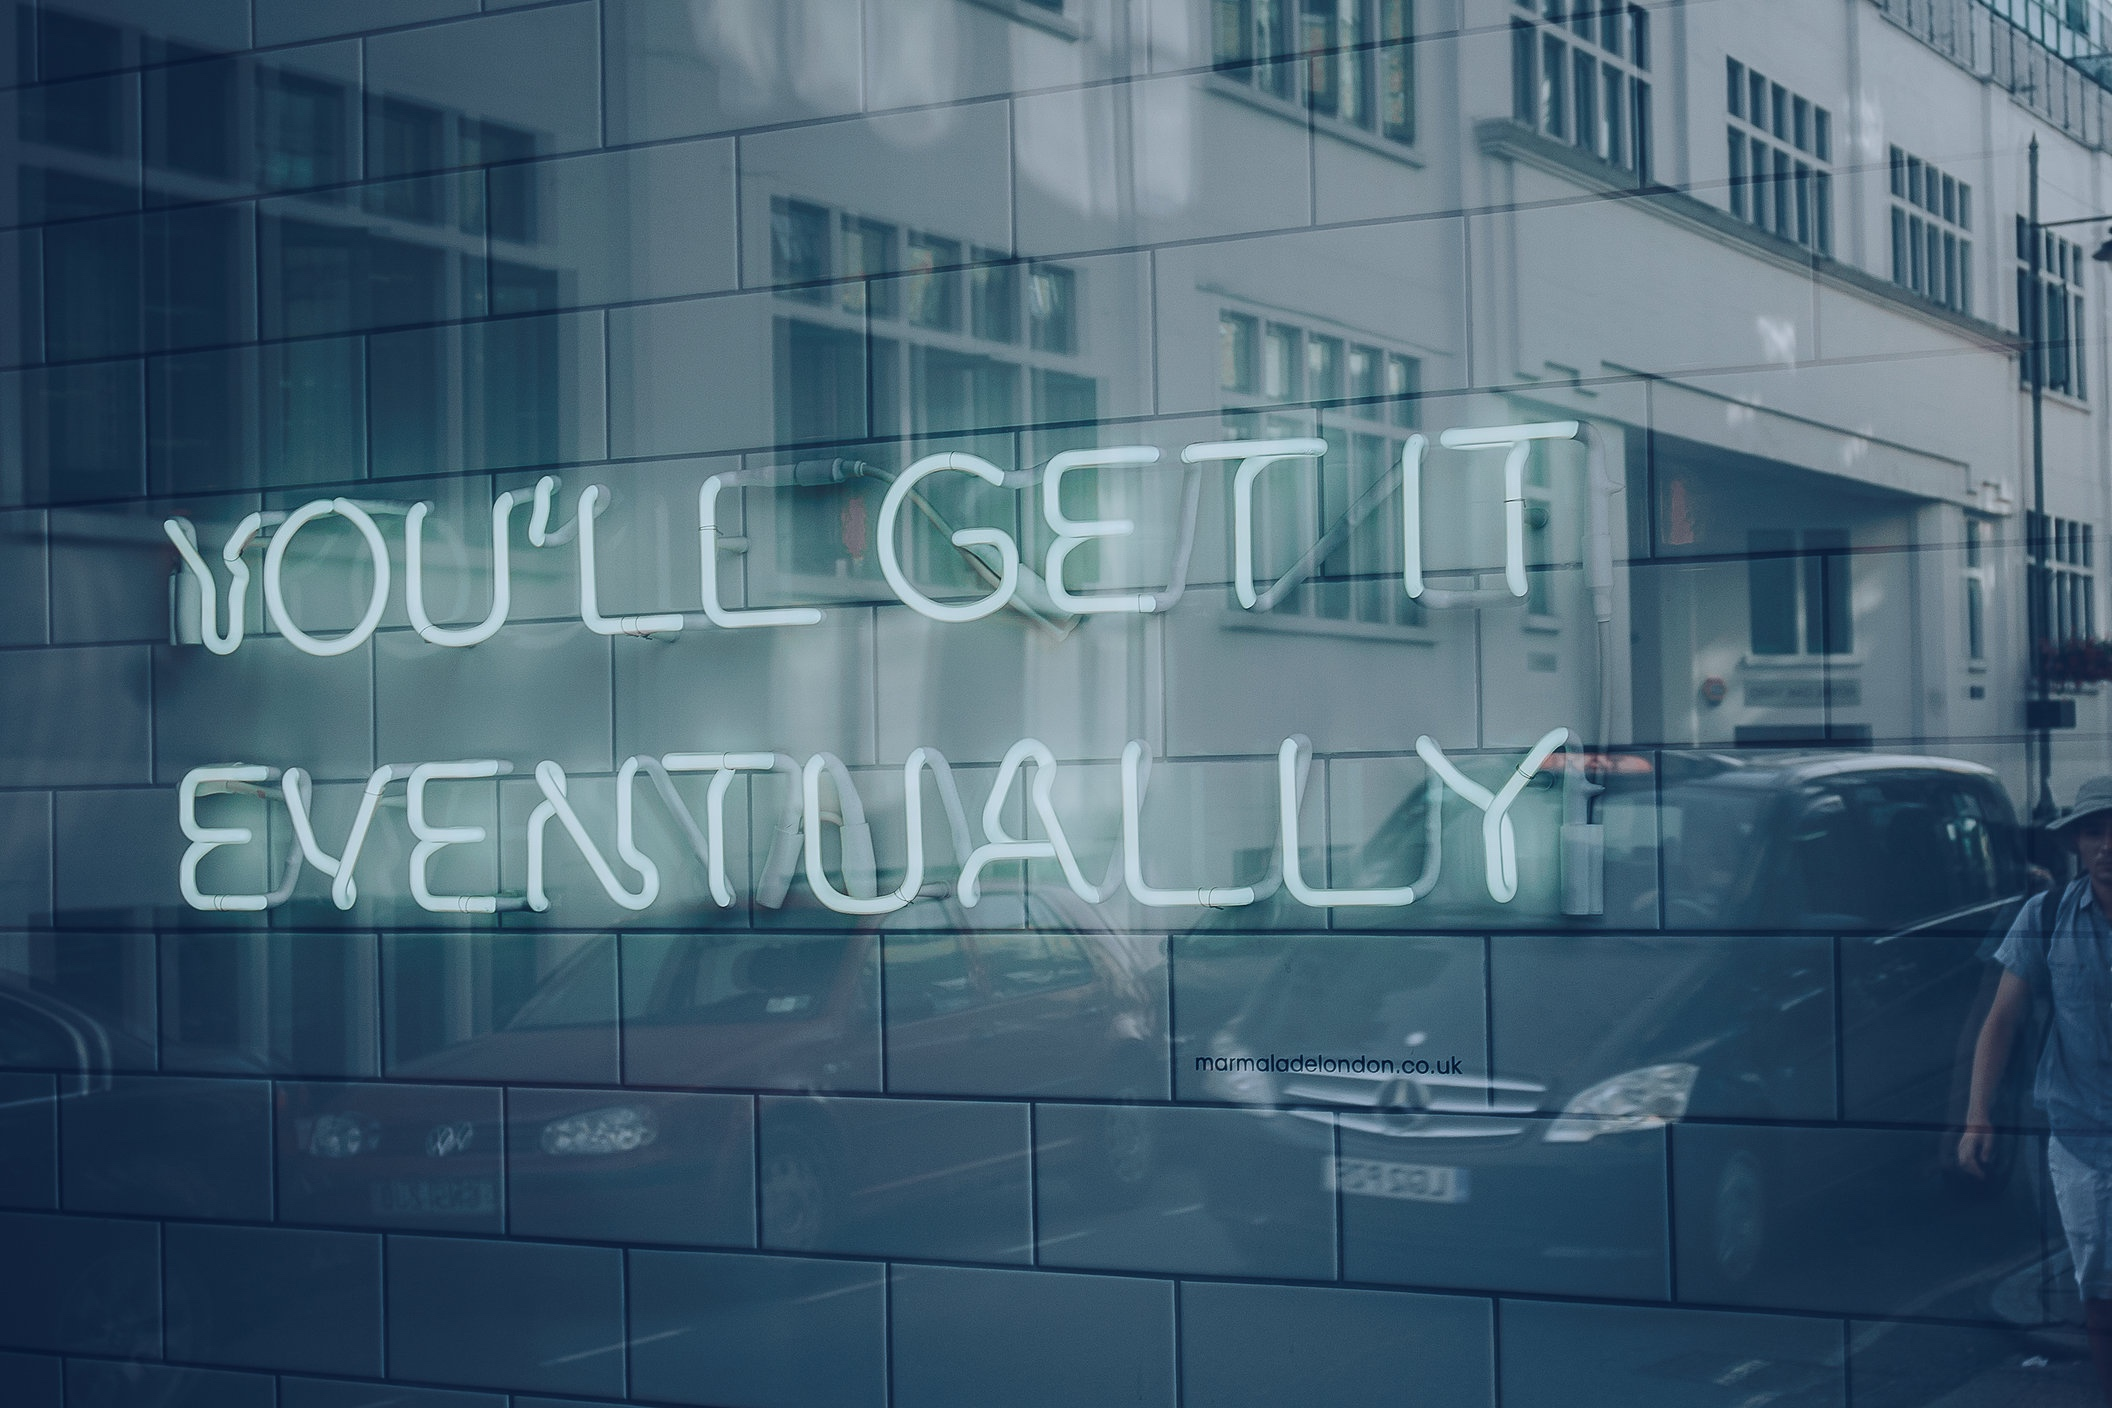 Neon sign that reads 'you'll get it eventually' reflecting how freelancers wait a long time to get paid by their clients